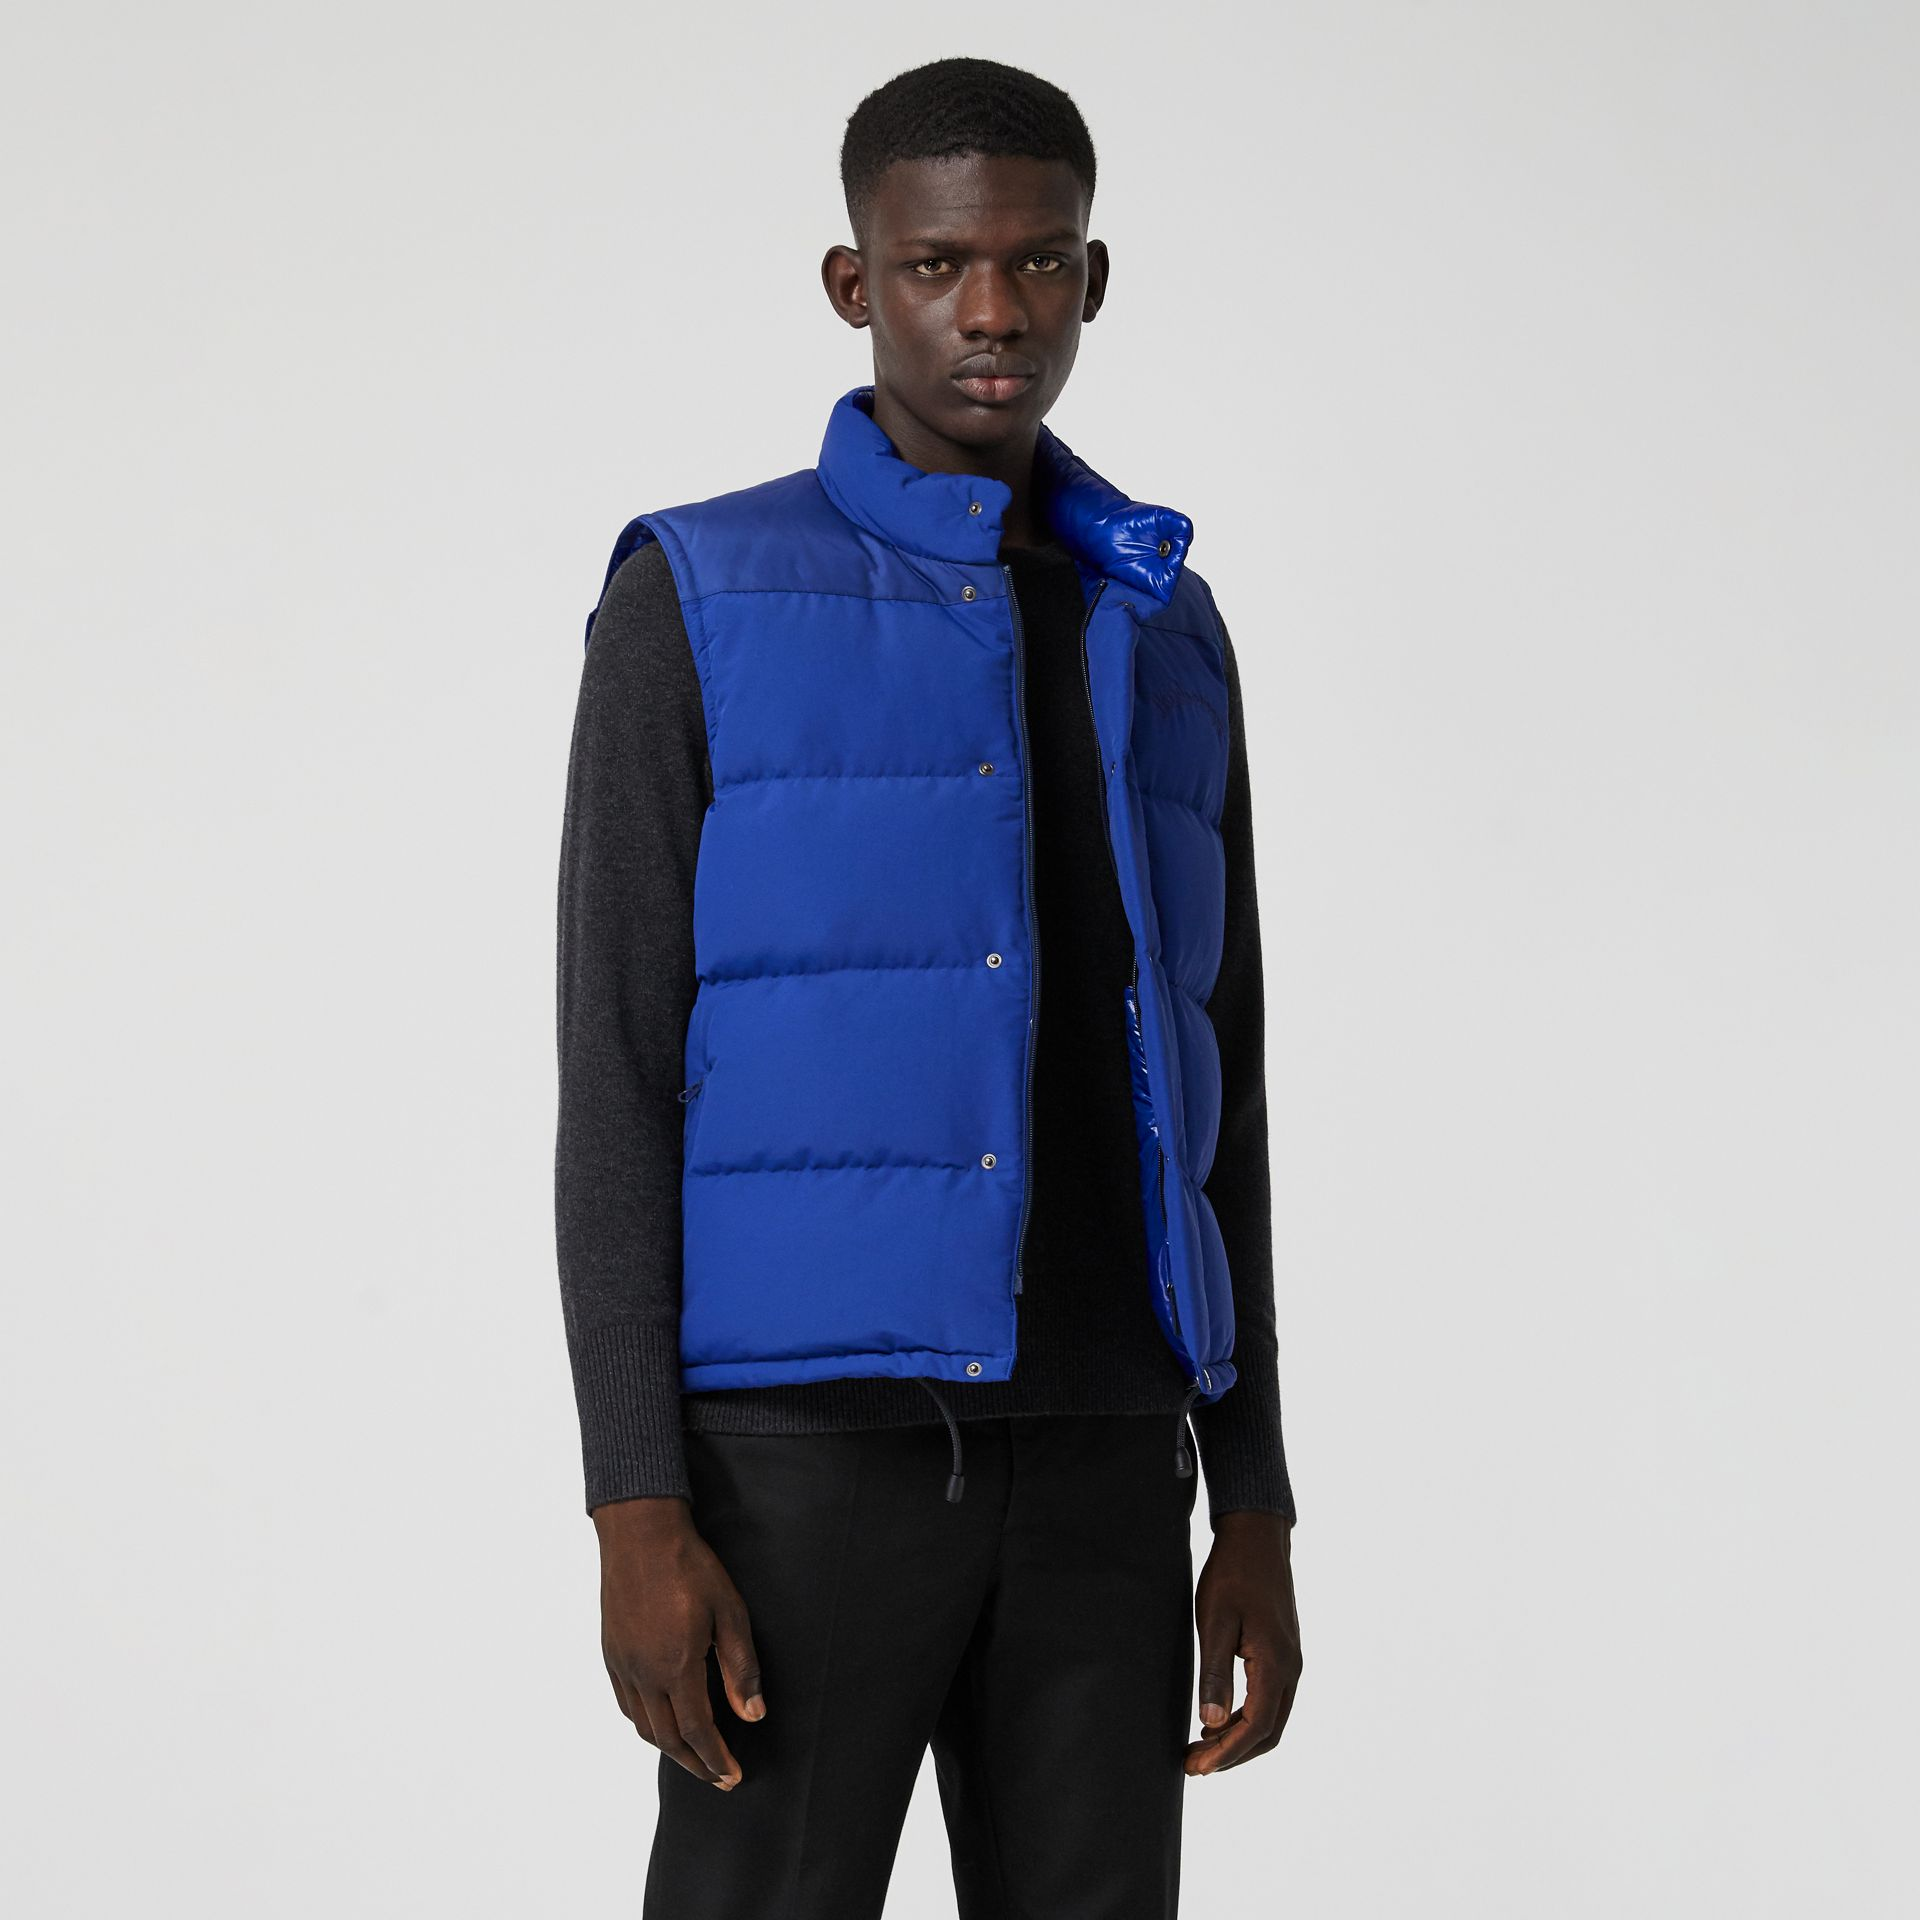 Embroidered Archive Logo Down-filled Gilet in Bright Blue - Men | Burberry United States - gallery image 4